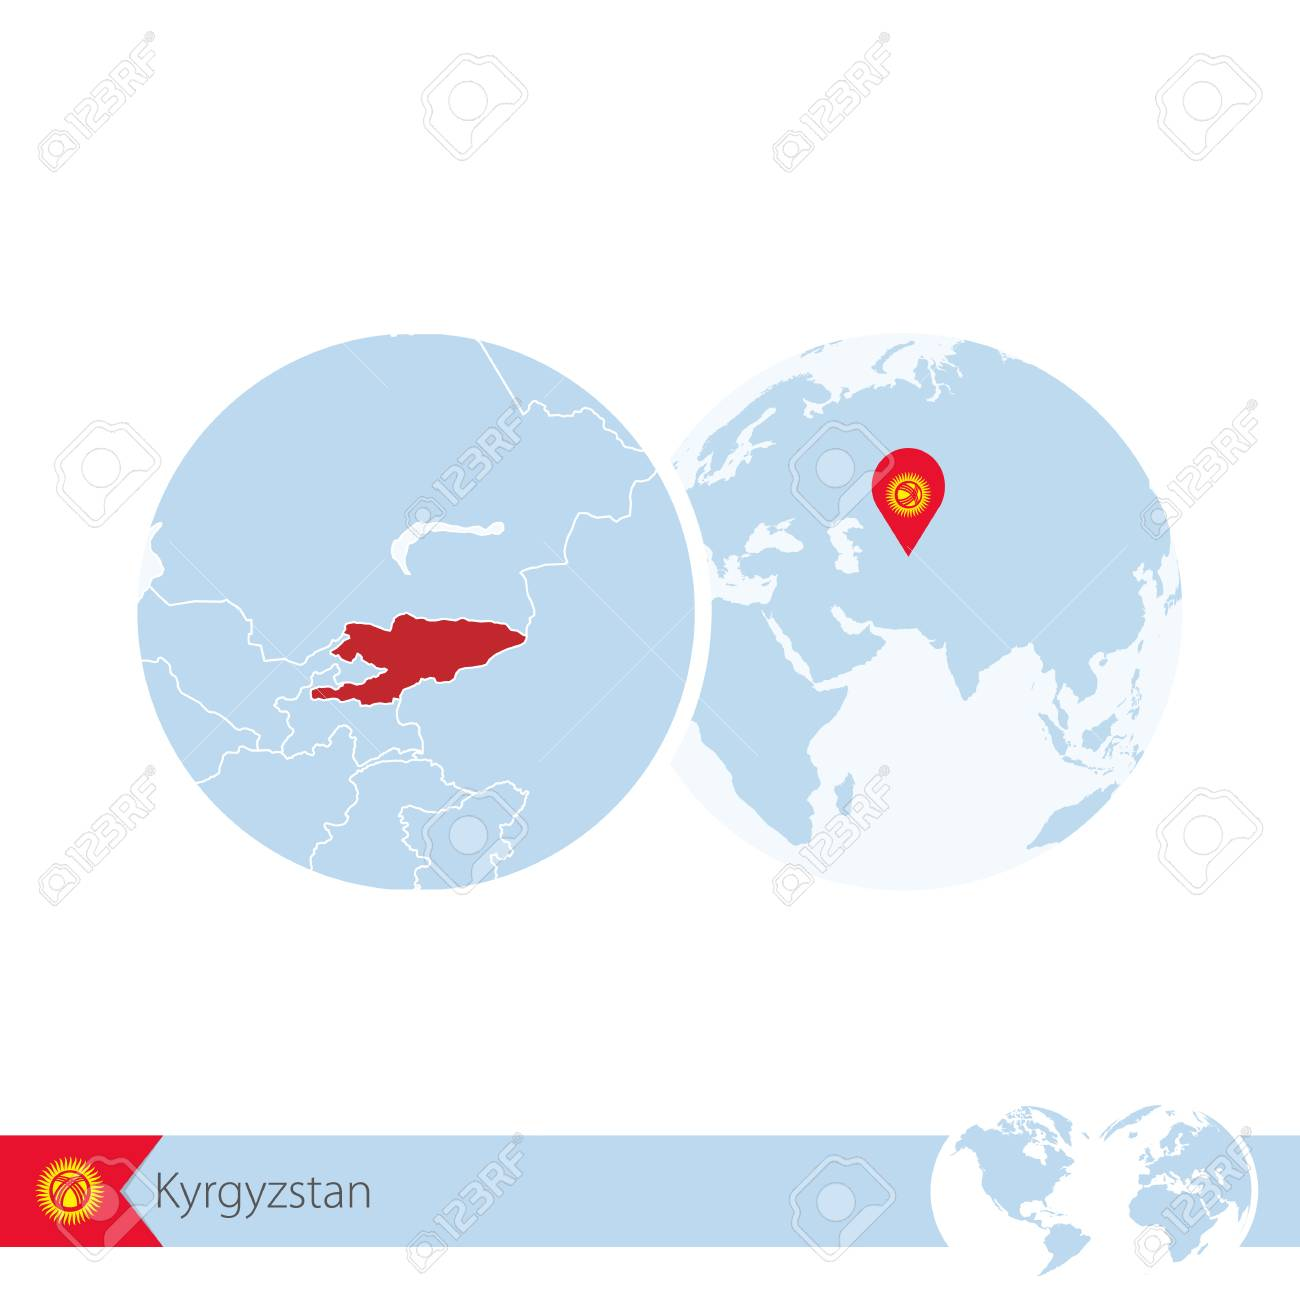 Kyrgyzstan on world globe with flag and regional map of kyrgyzstan kyrgyzstan on world globe with flag and regional map of kyrgyzstan vector illustration stock gumiabroncs Image collections